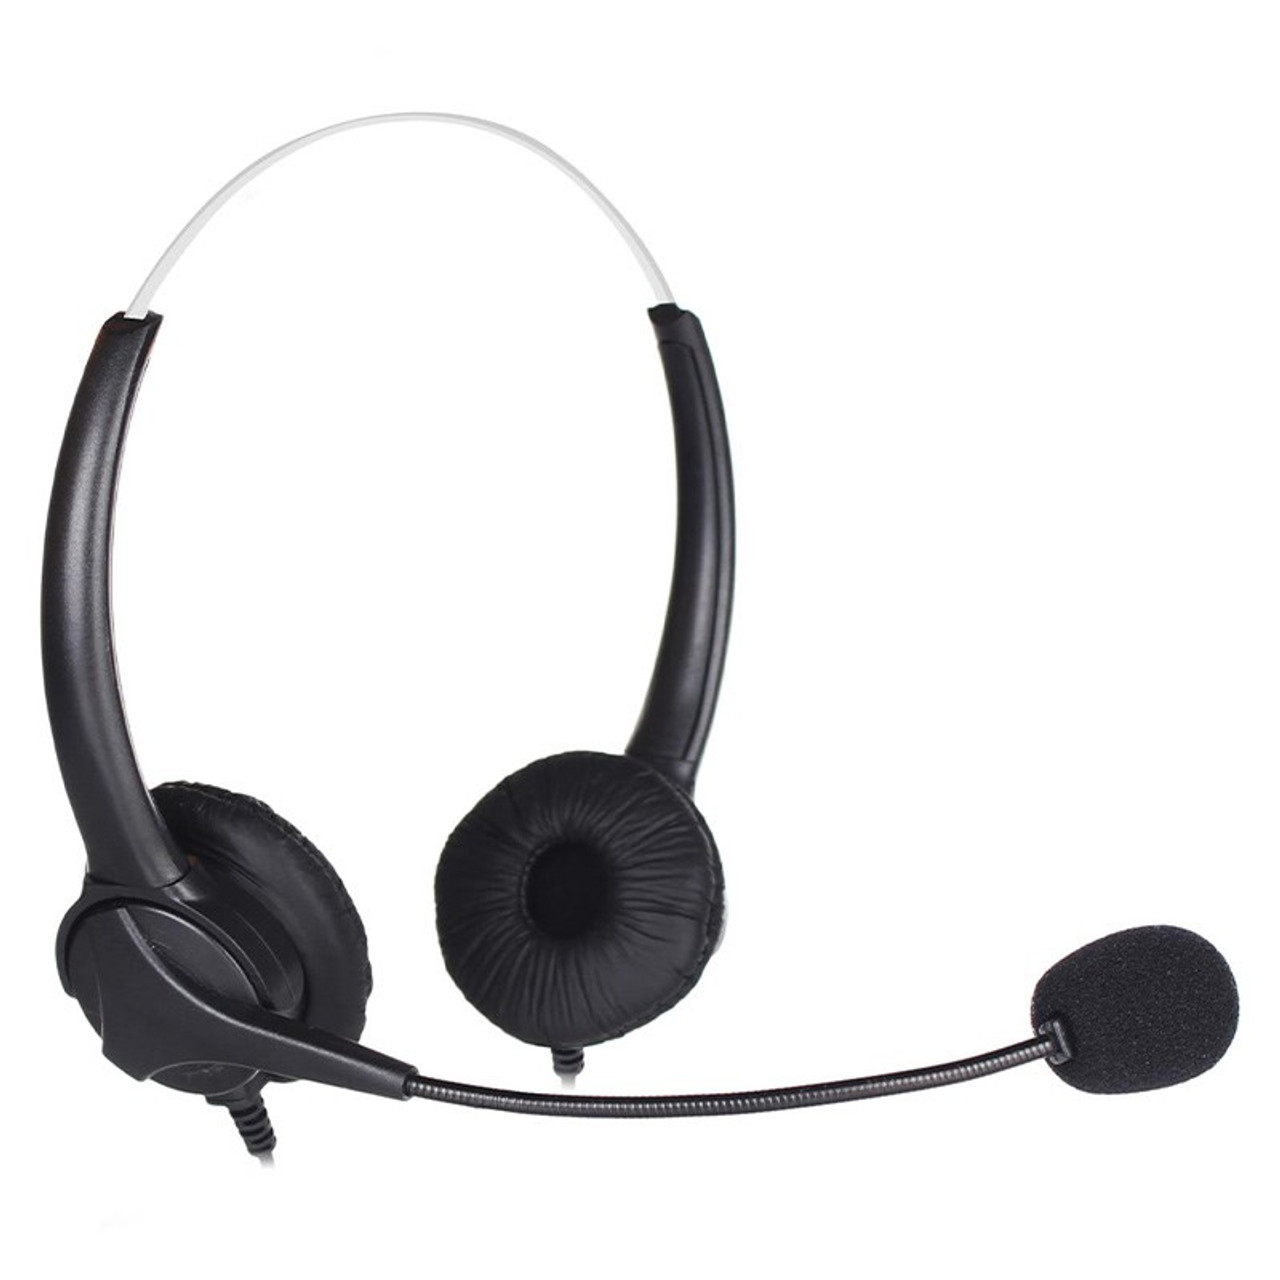 Image for Shintaro Stereo USB Headset with Noise-Cancelling Microphone CX Computer Superstore